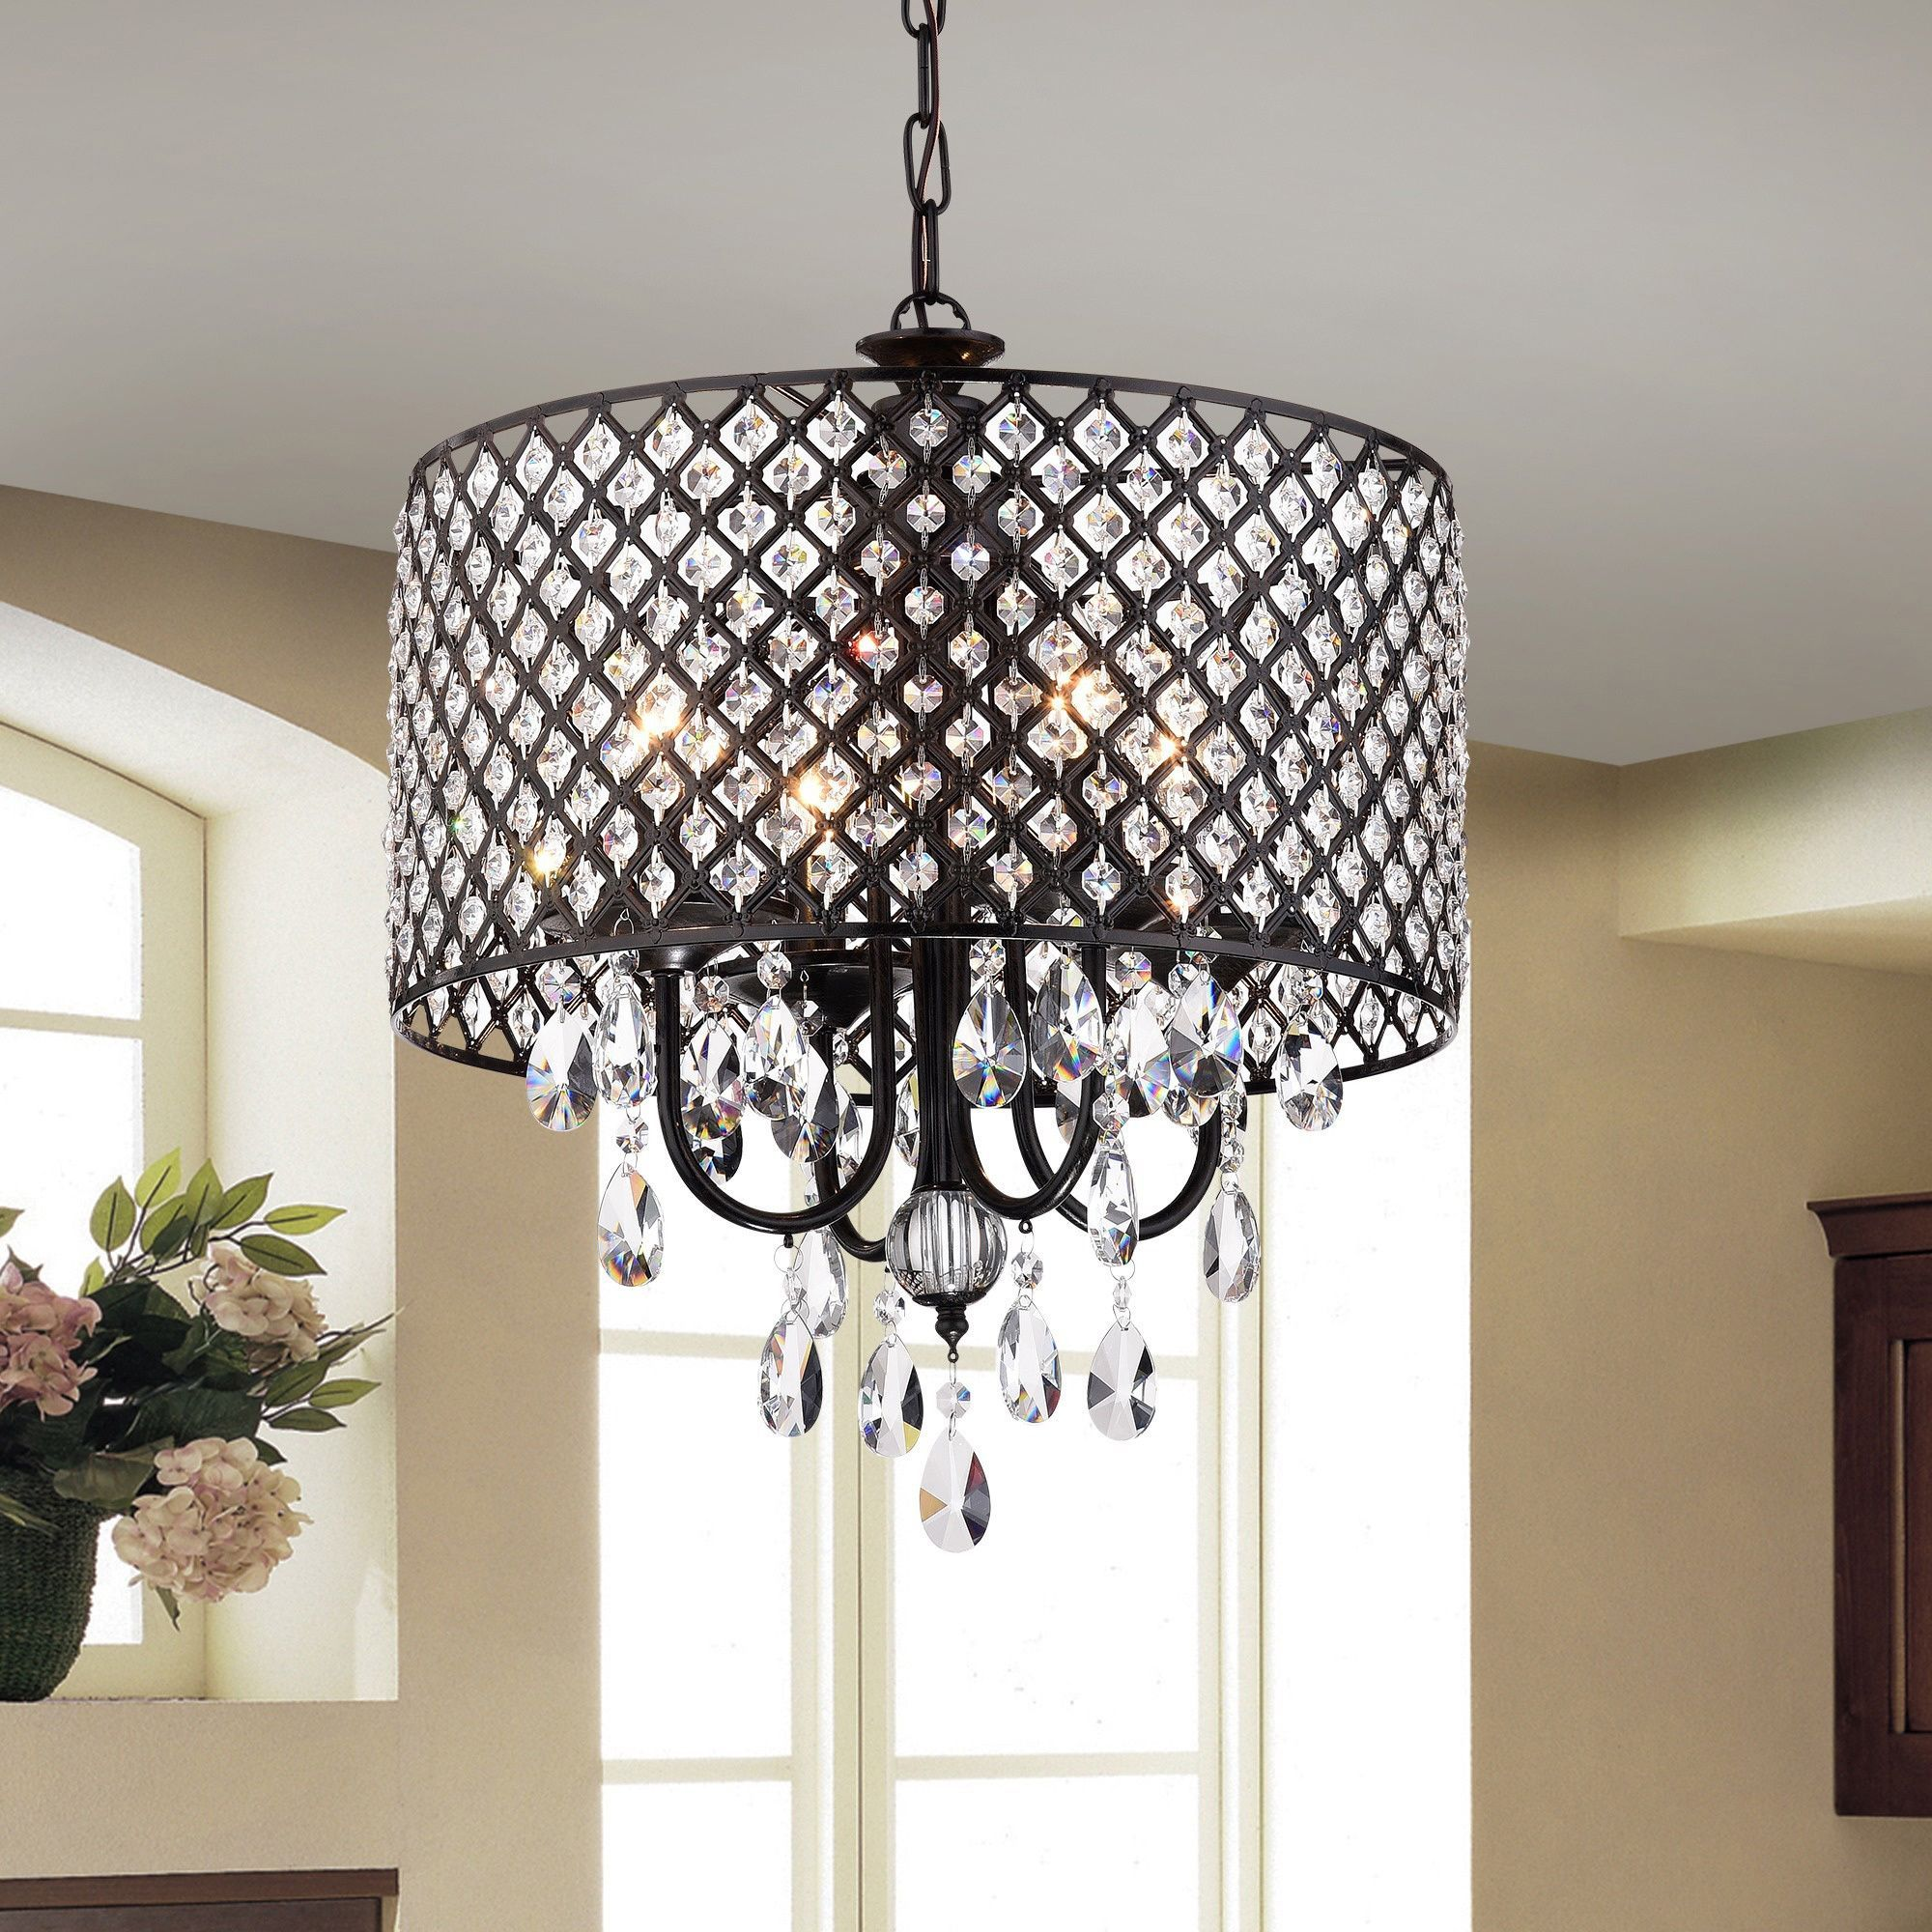 Warehouse of Tiffany Monet 4 lights Black finished 17 inch Crystal